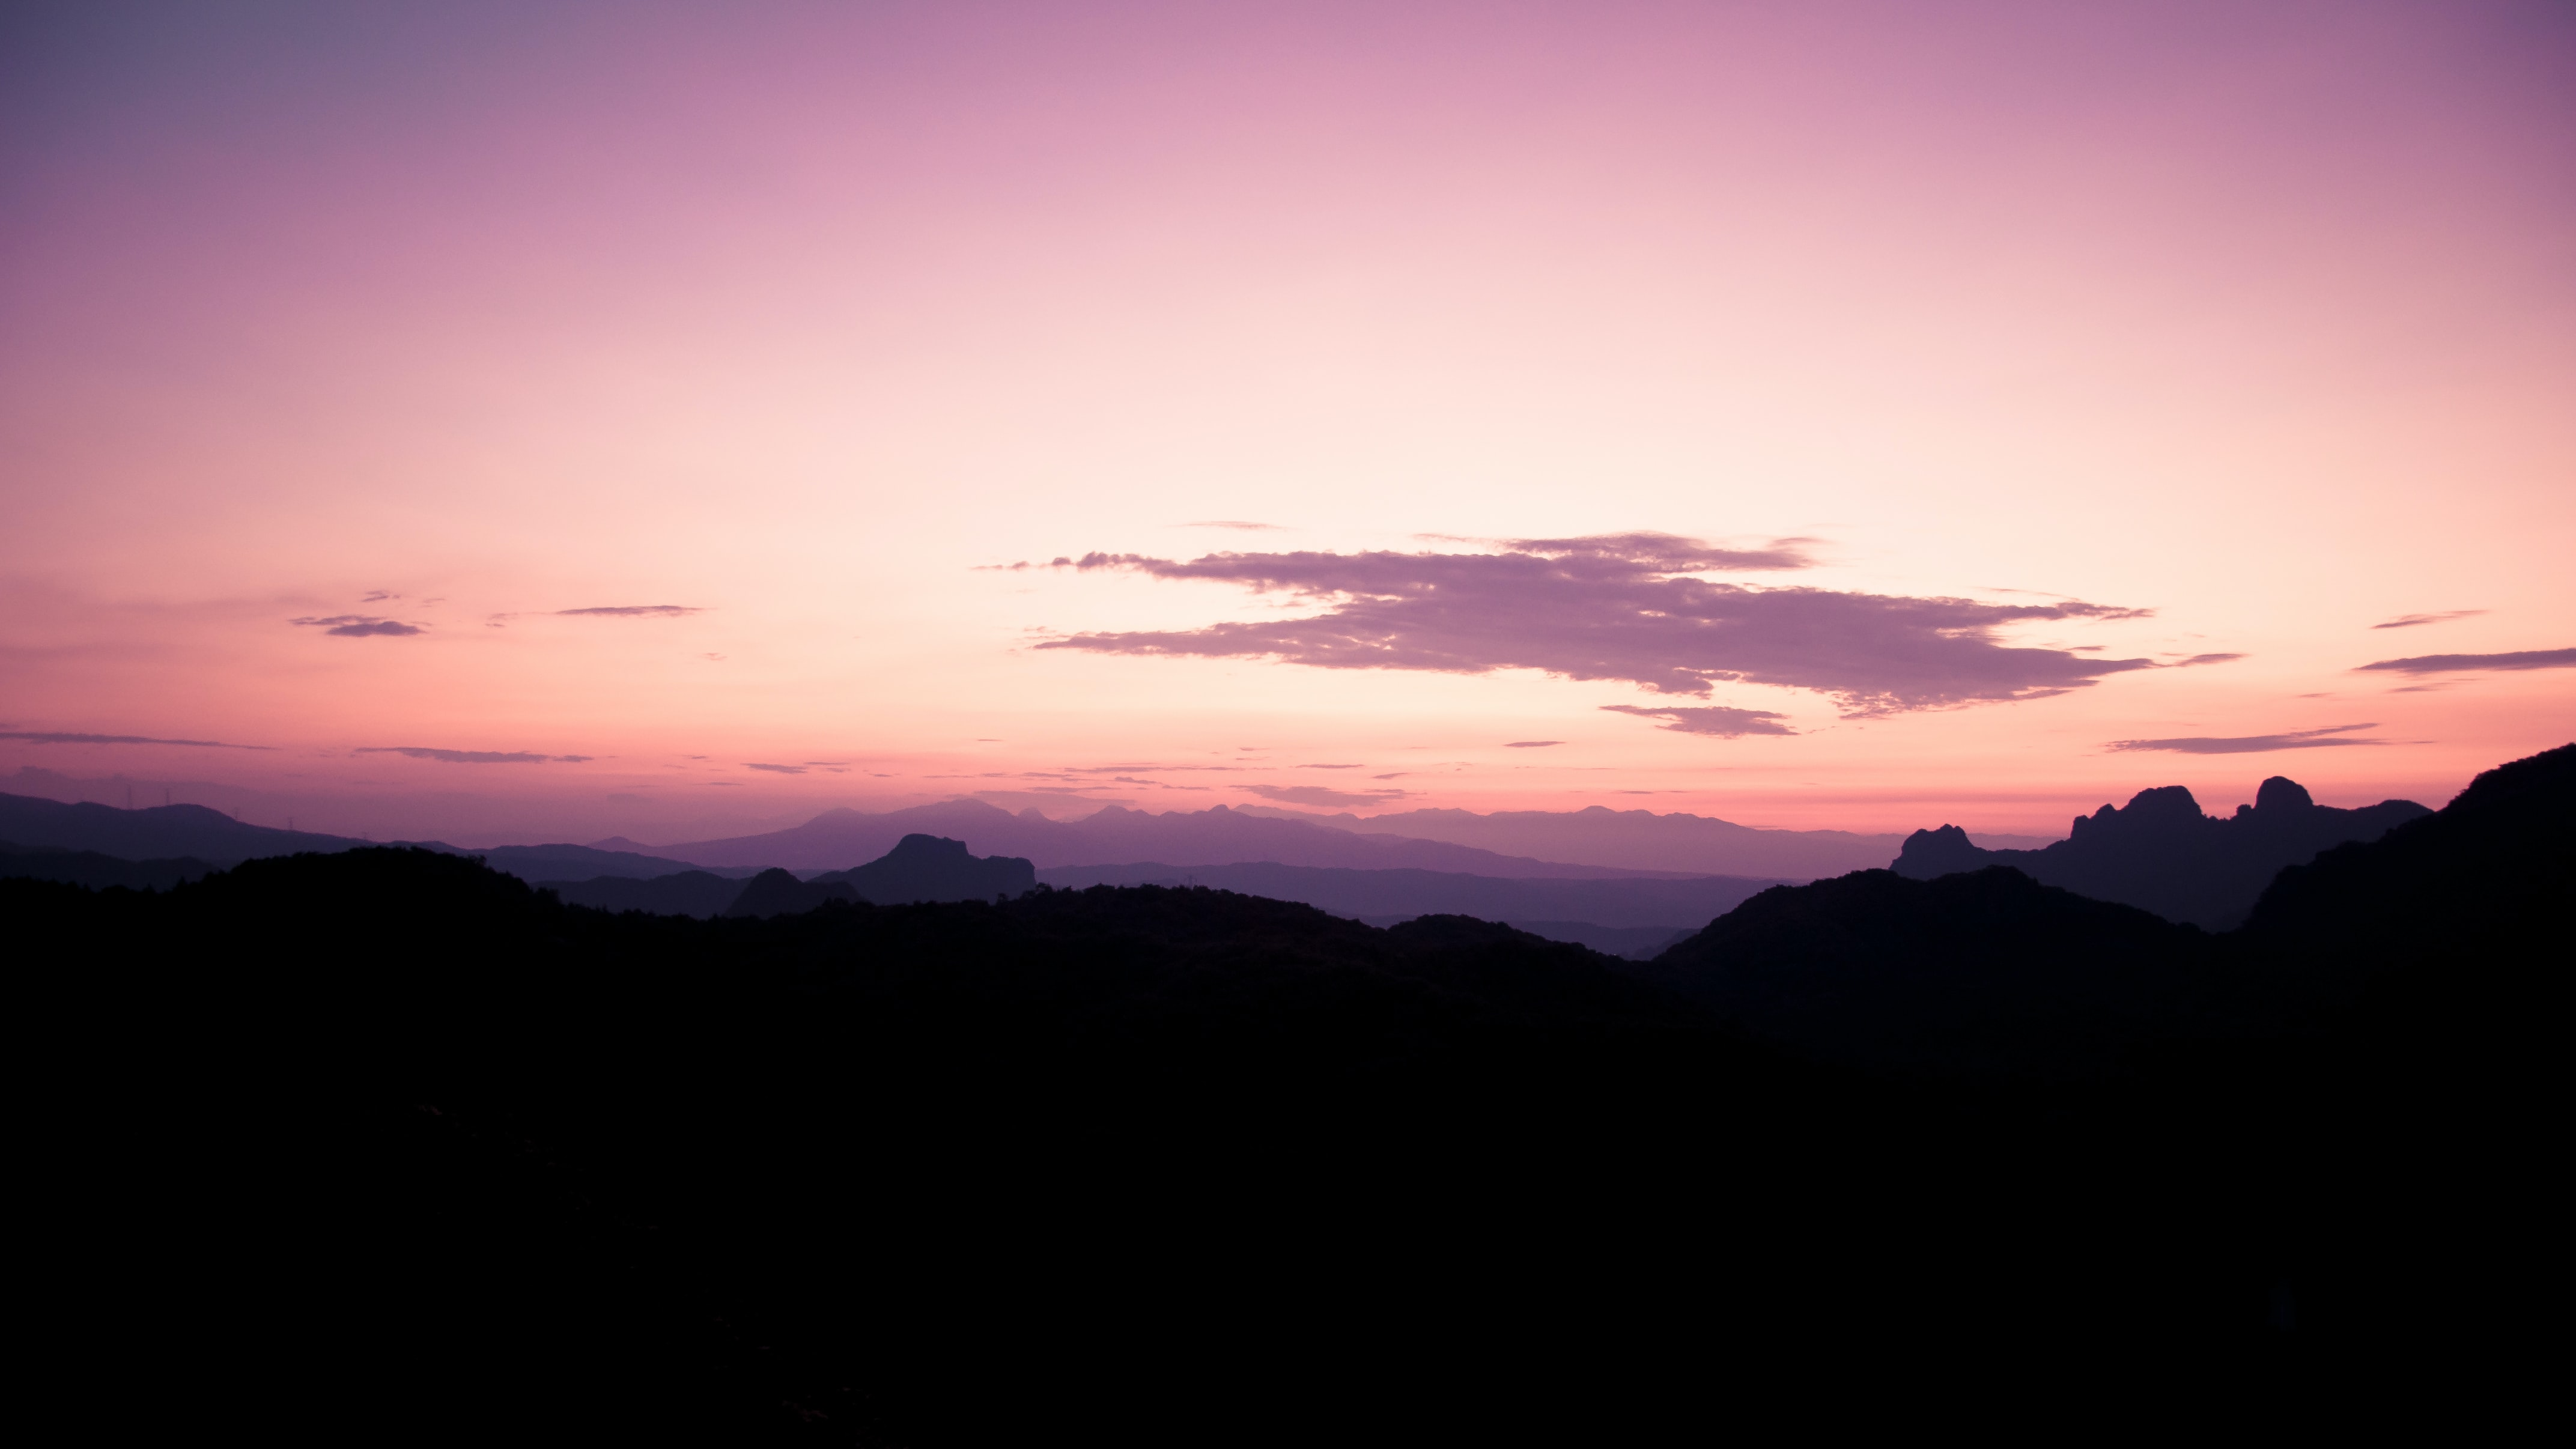 silhouette of mountain at golden hour